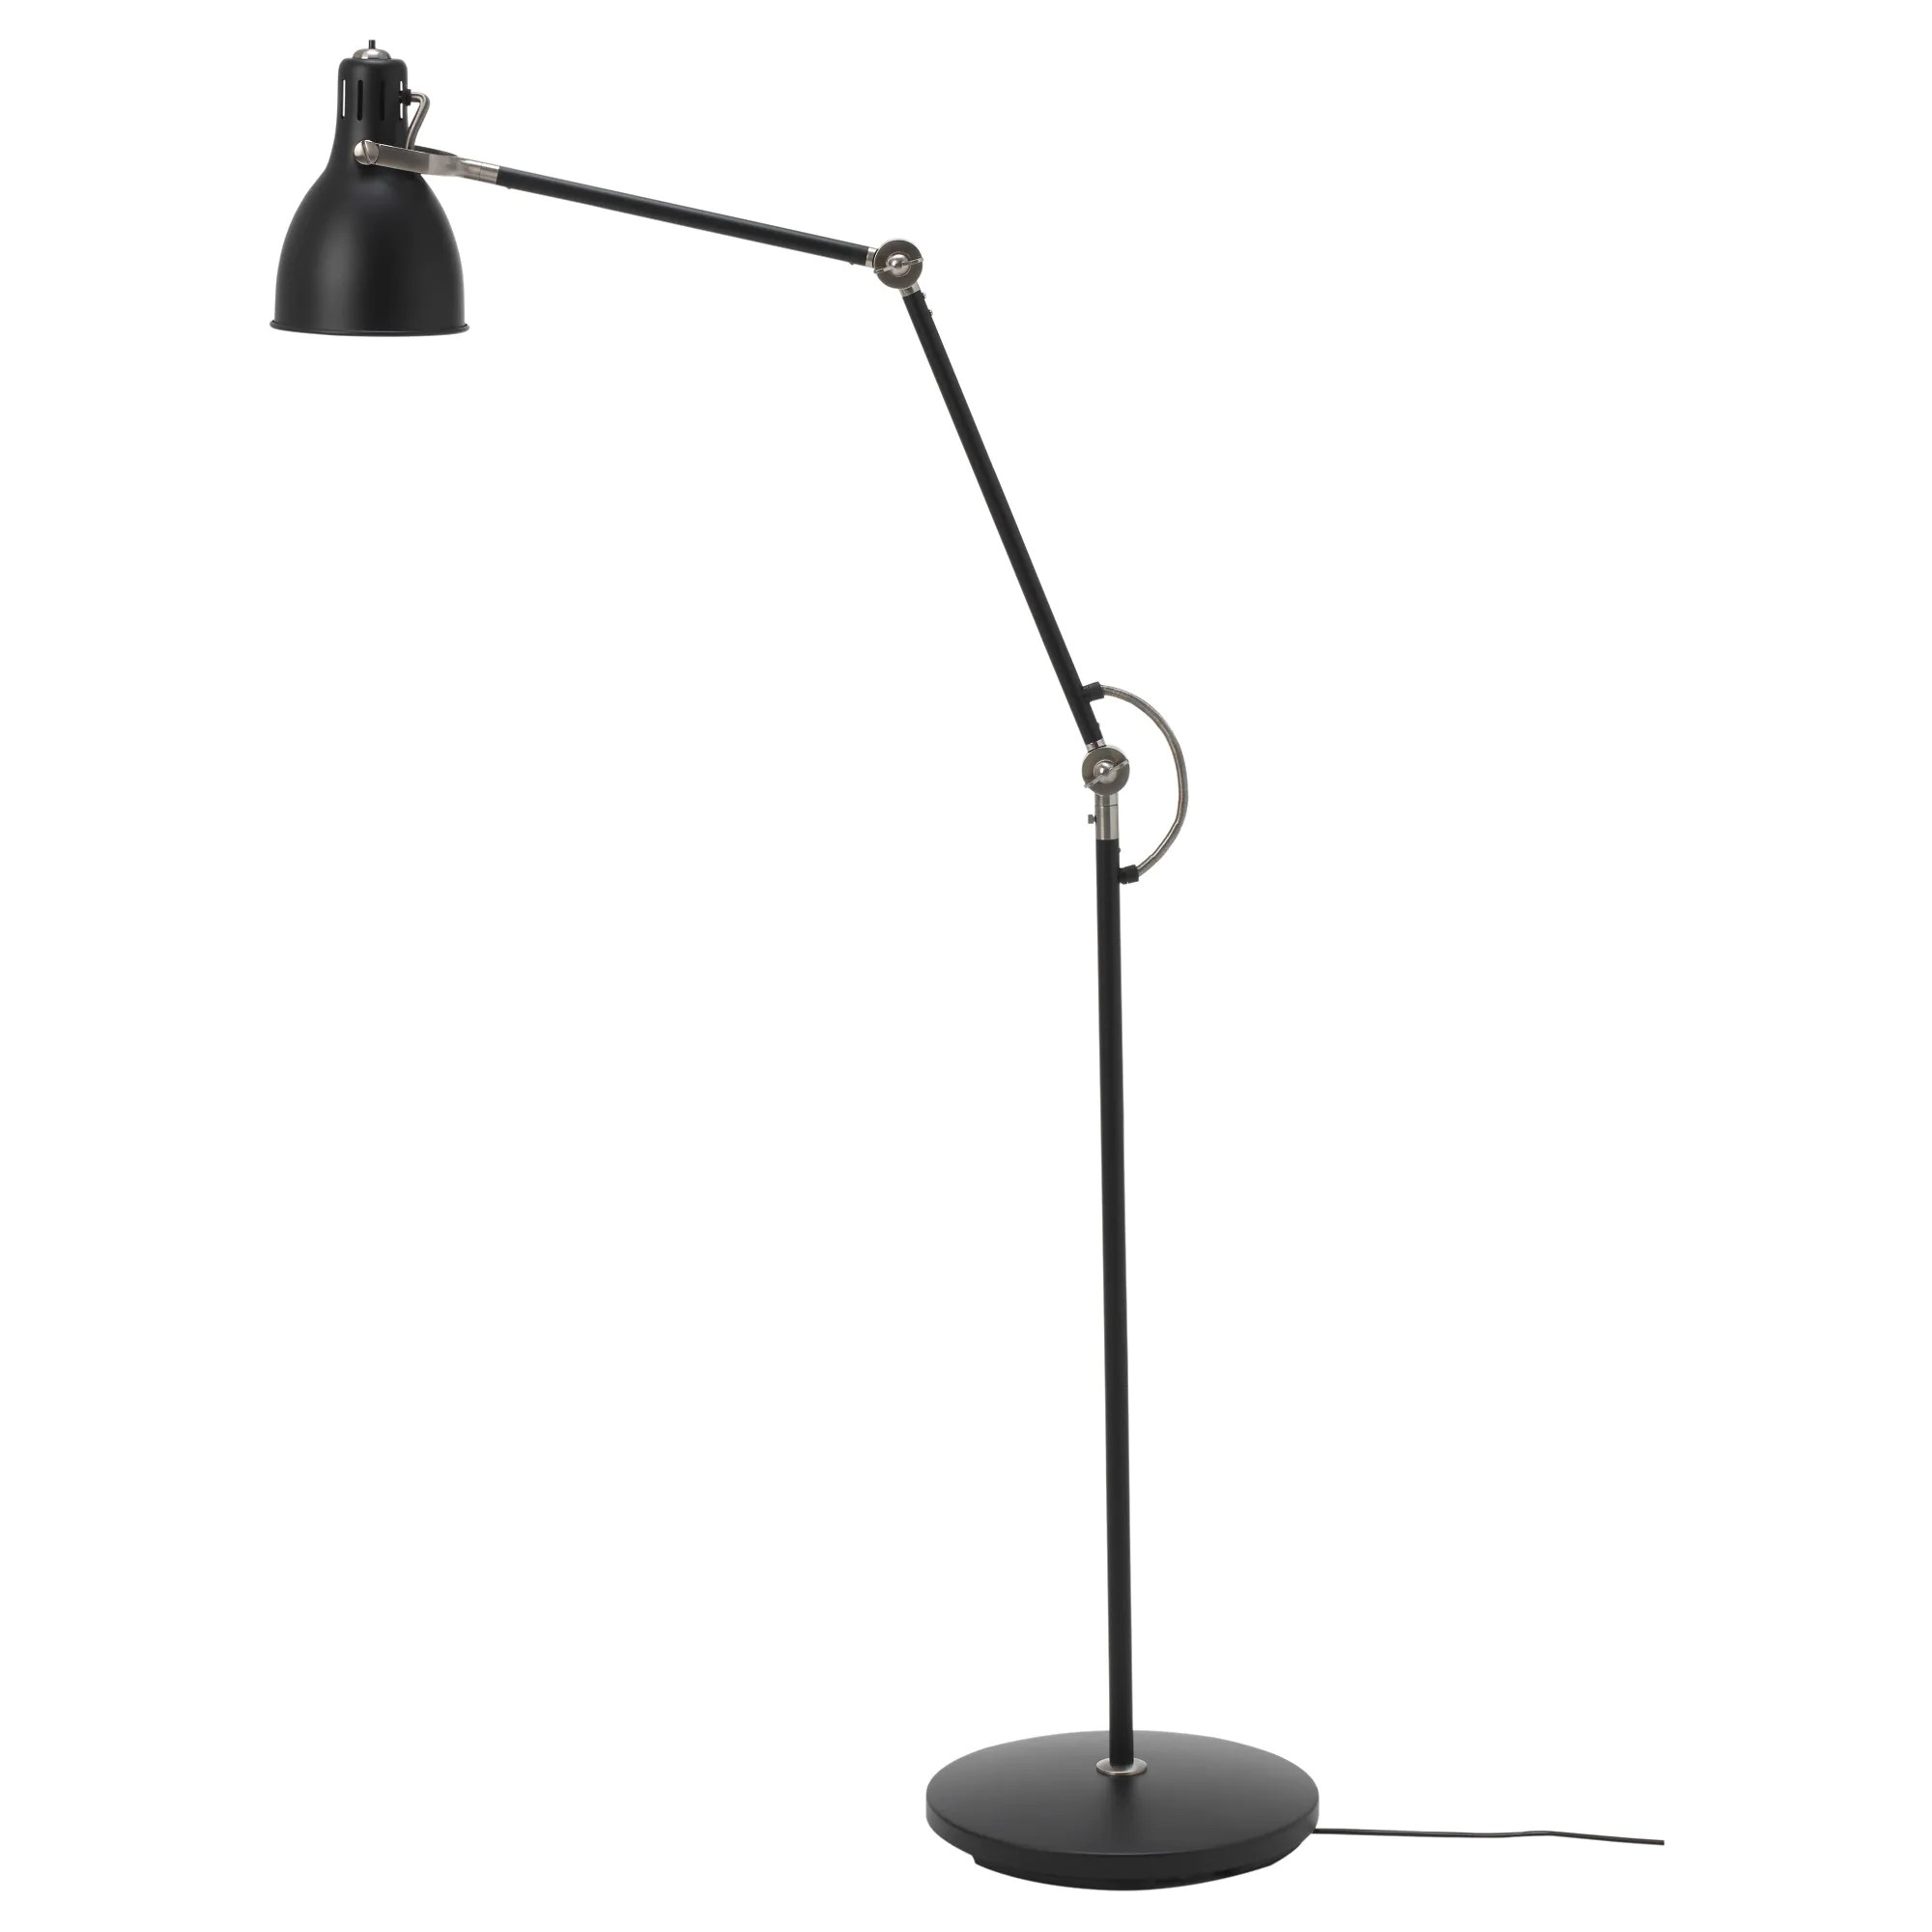 Ikea Reading Lamp ArÖd Floor Reading Lamp With Led Bulb Dark Gray Anthracite